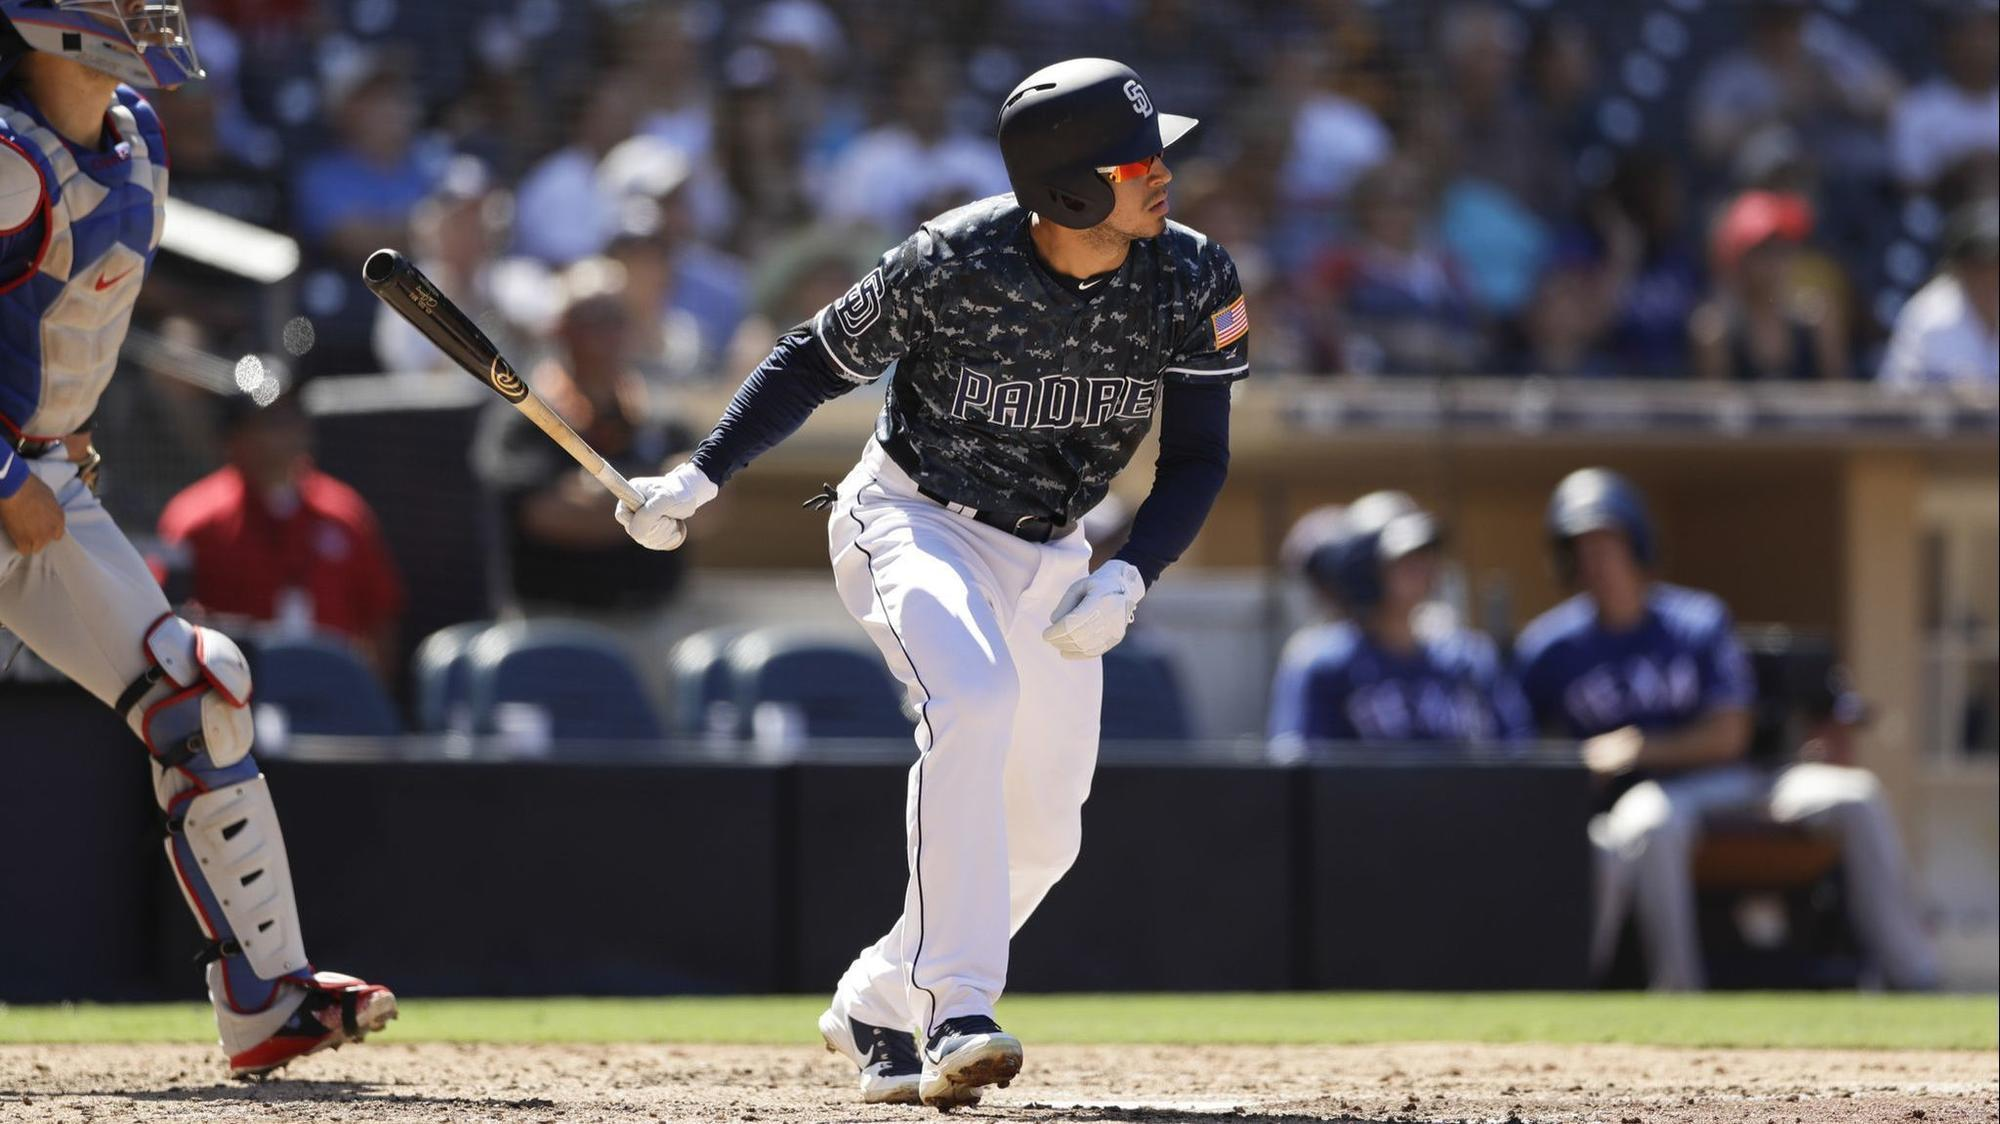 Sd-sp-padres-javy-guerra-playing-time-offense-defense-0924